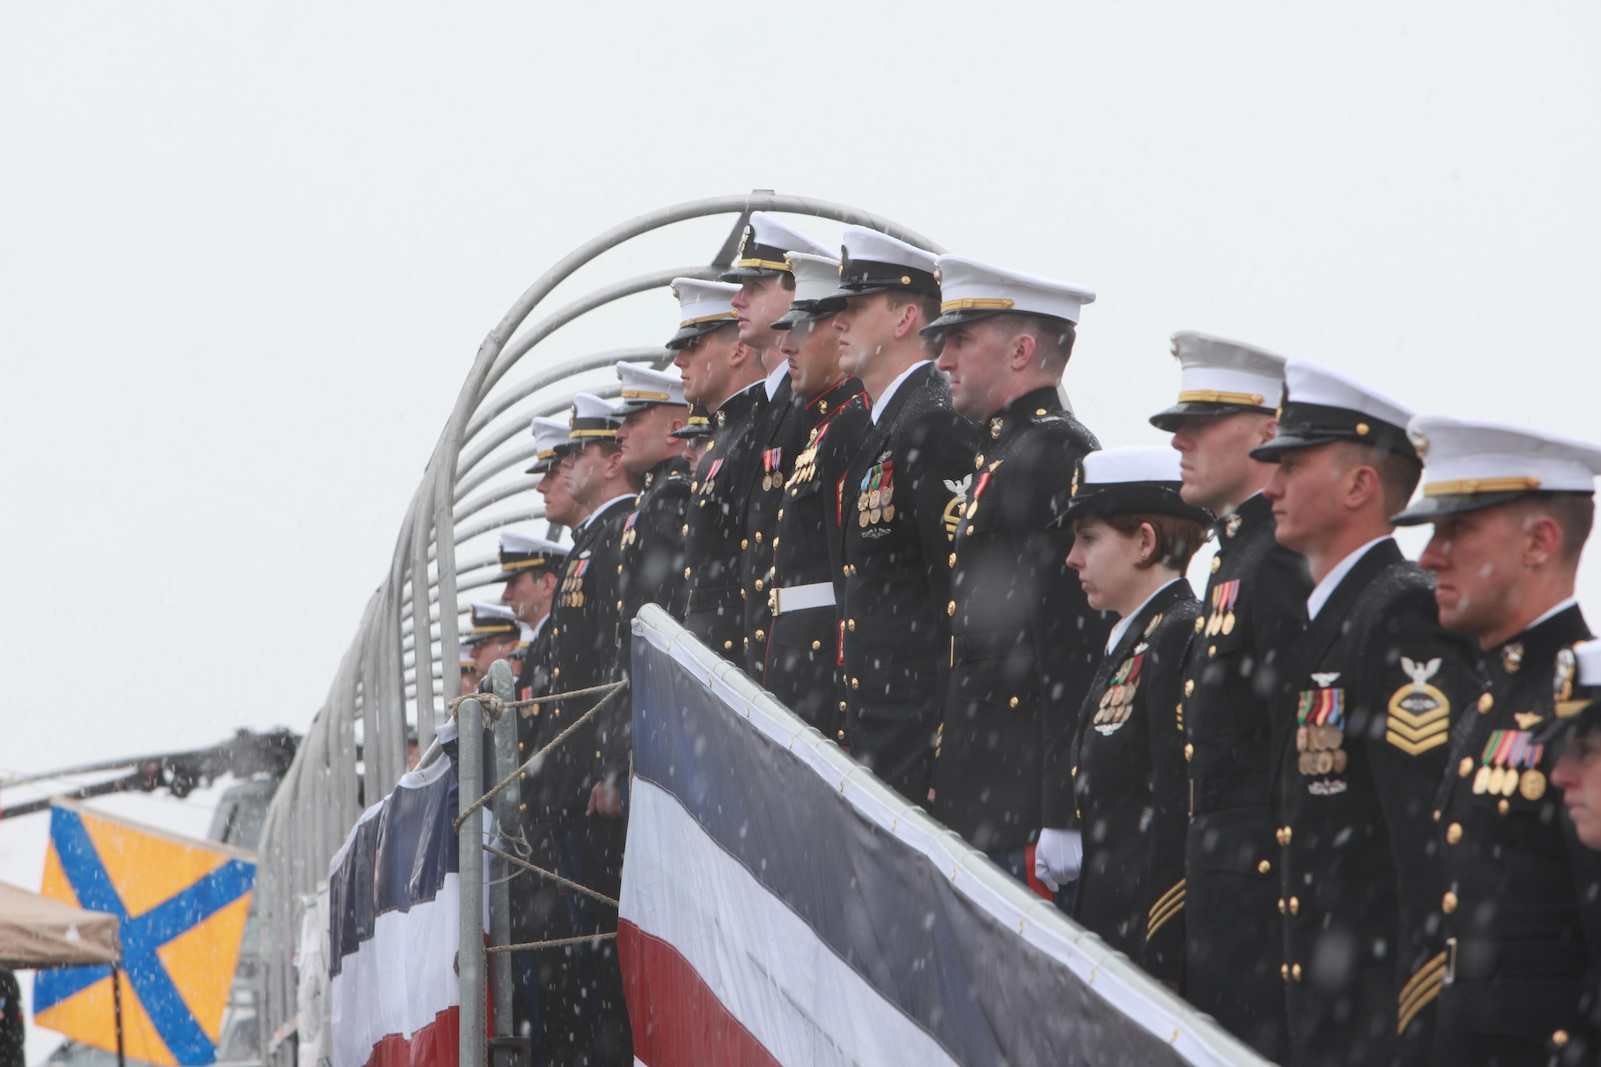 Marines with Task Force Denali man the rails during the USS Anchorage commissioning ceremony in Anchorage, Alaska, May 4, 2013. More than 4,000 people gathered to witness the ceremony. The USS Anchorage is the second ship to be named after the city and the first U.S. Navy ship to be commissioned in Alaska.